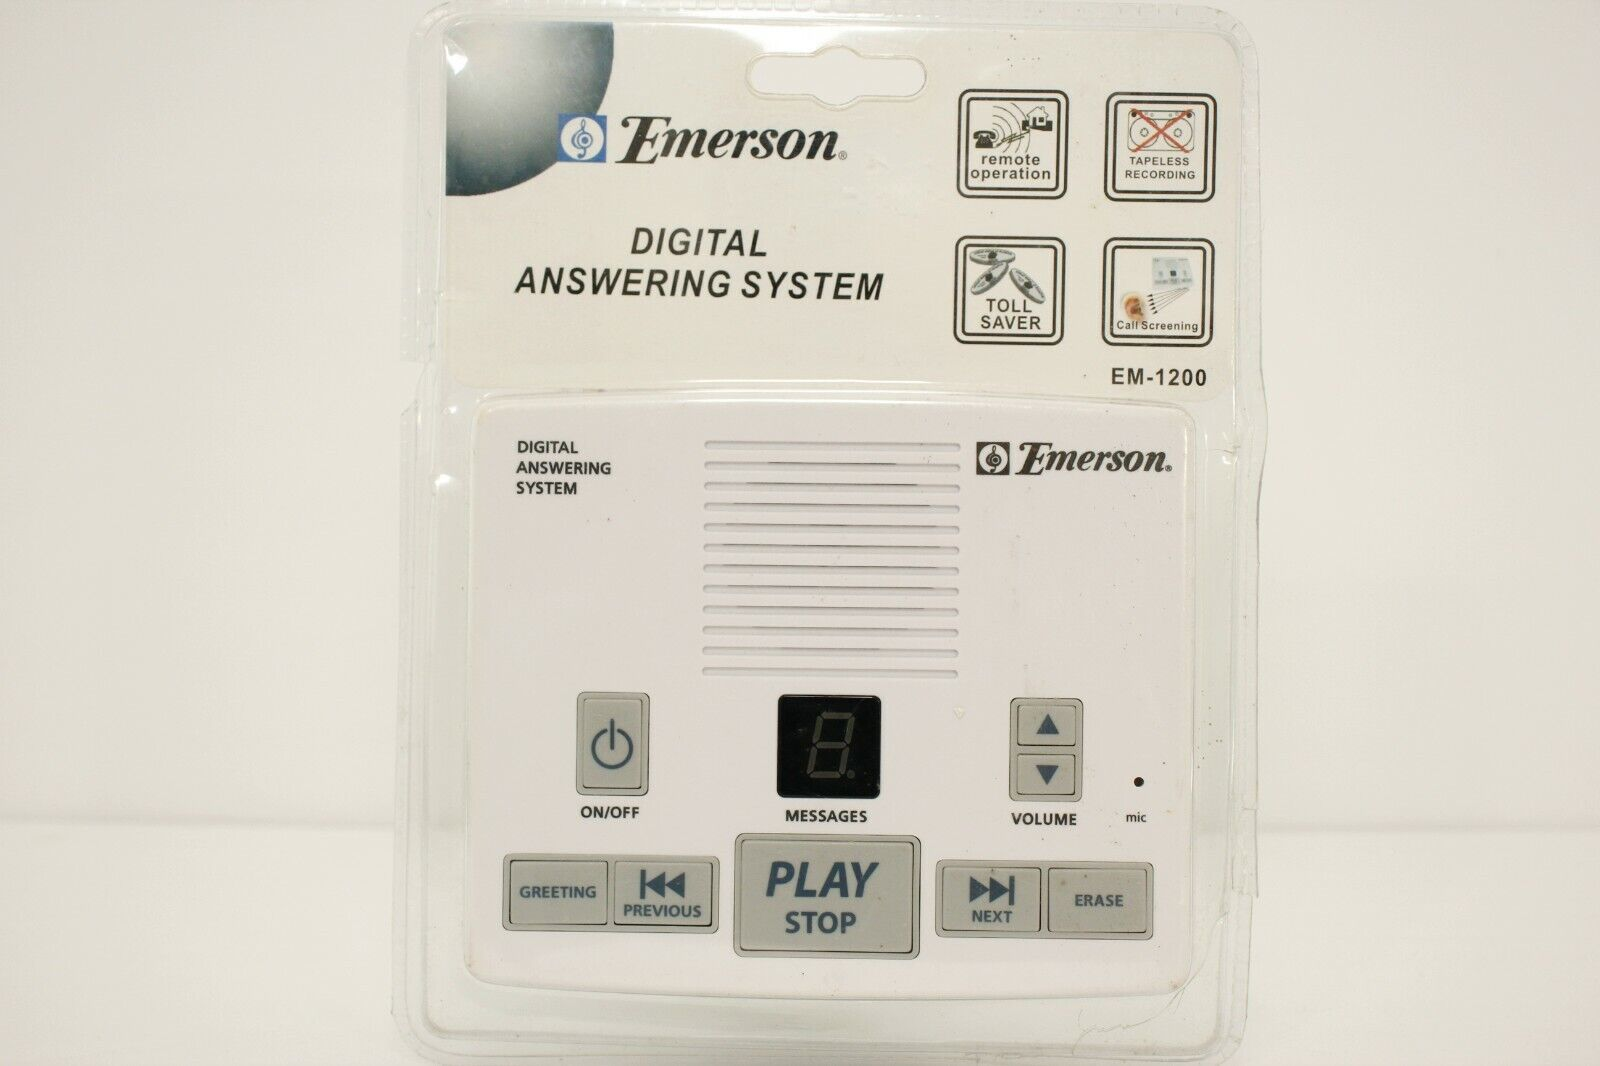 Emerson Digital Answering Machine System Tapeless Recording